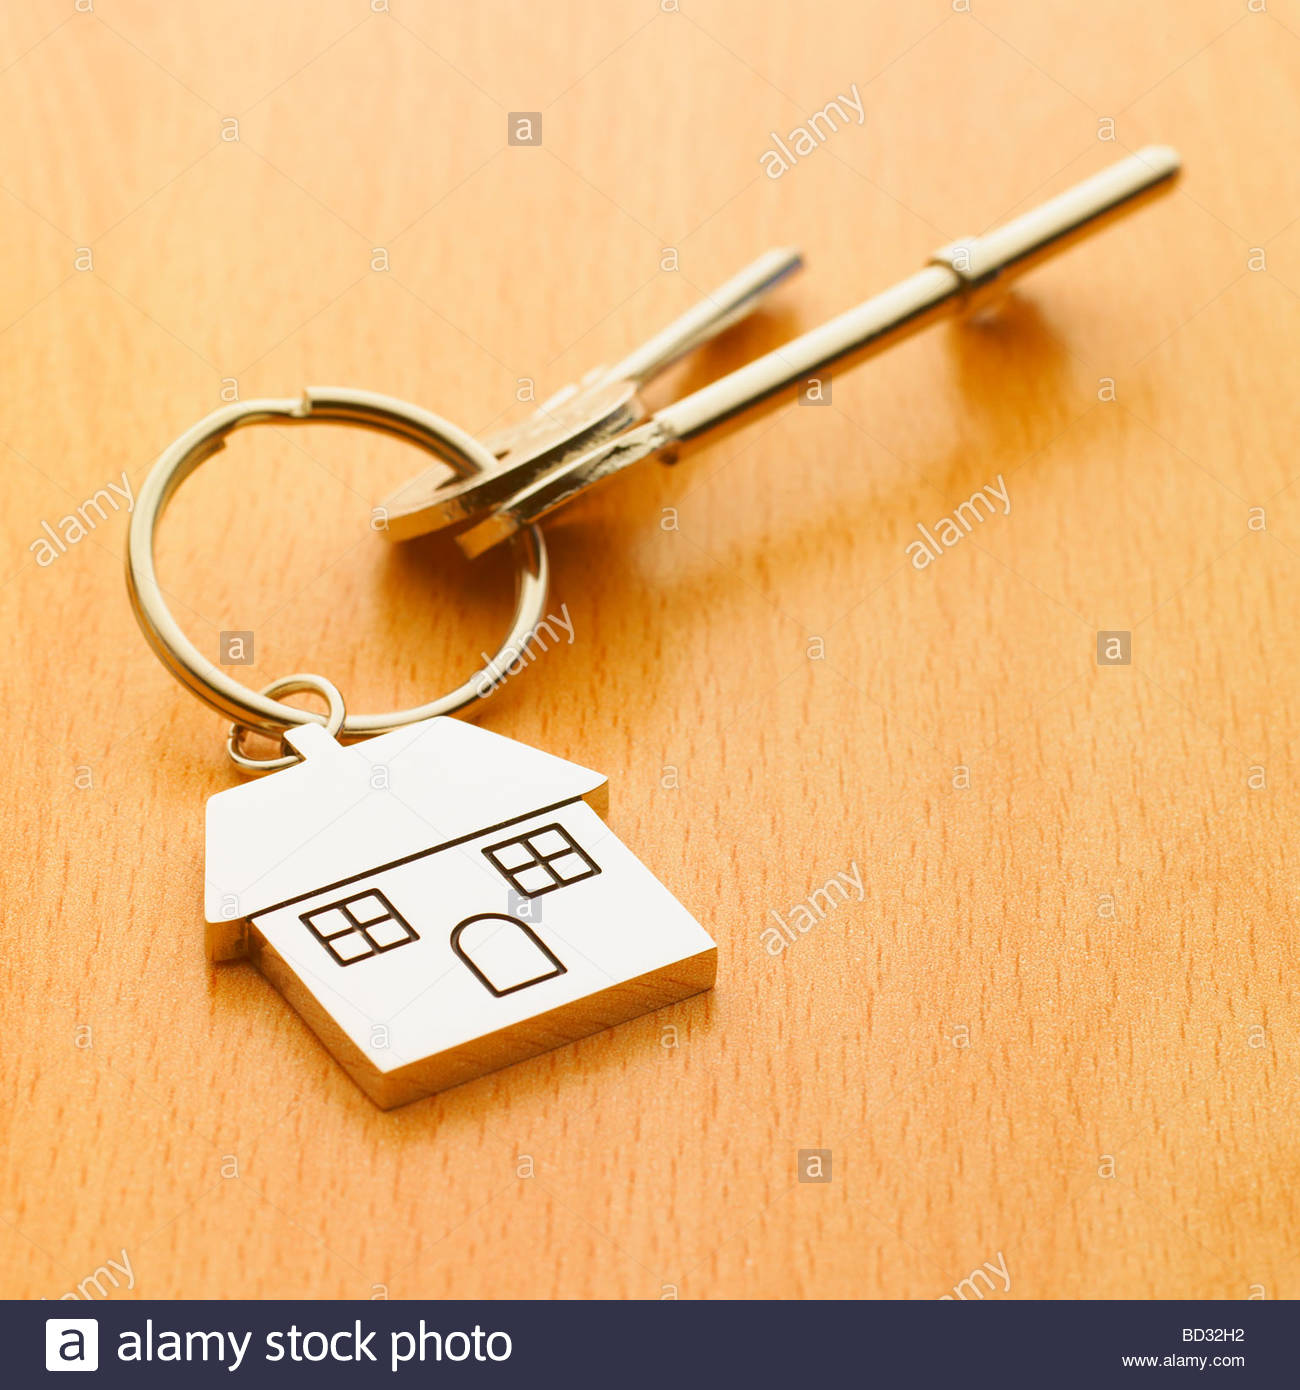 House Keys attached to a House Shaped Key Fob on Table Top. - Stock Image